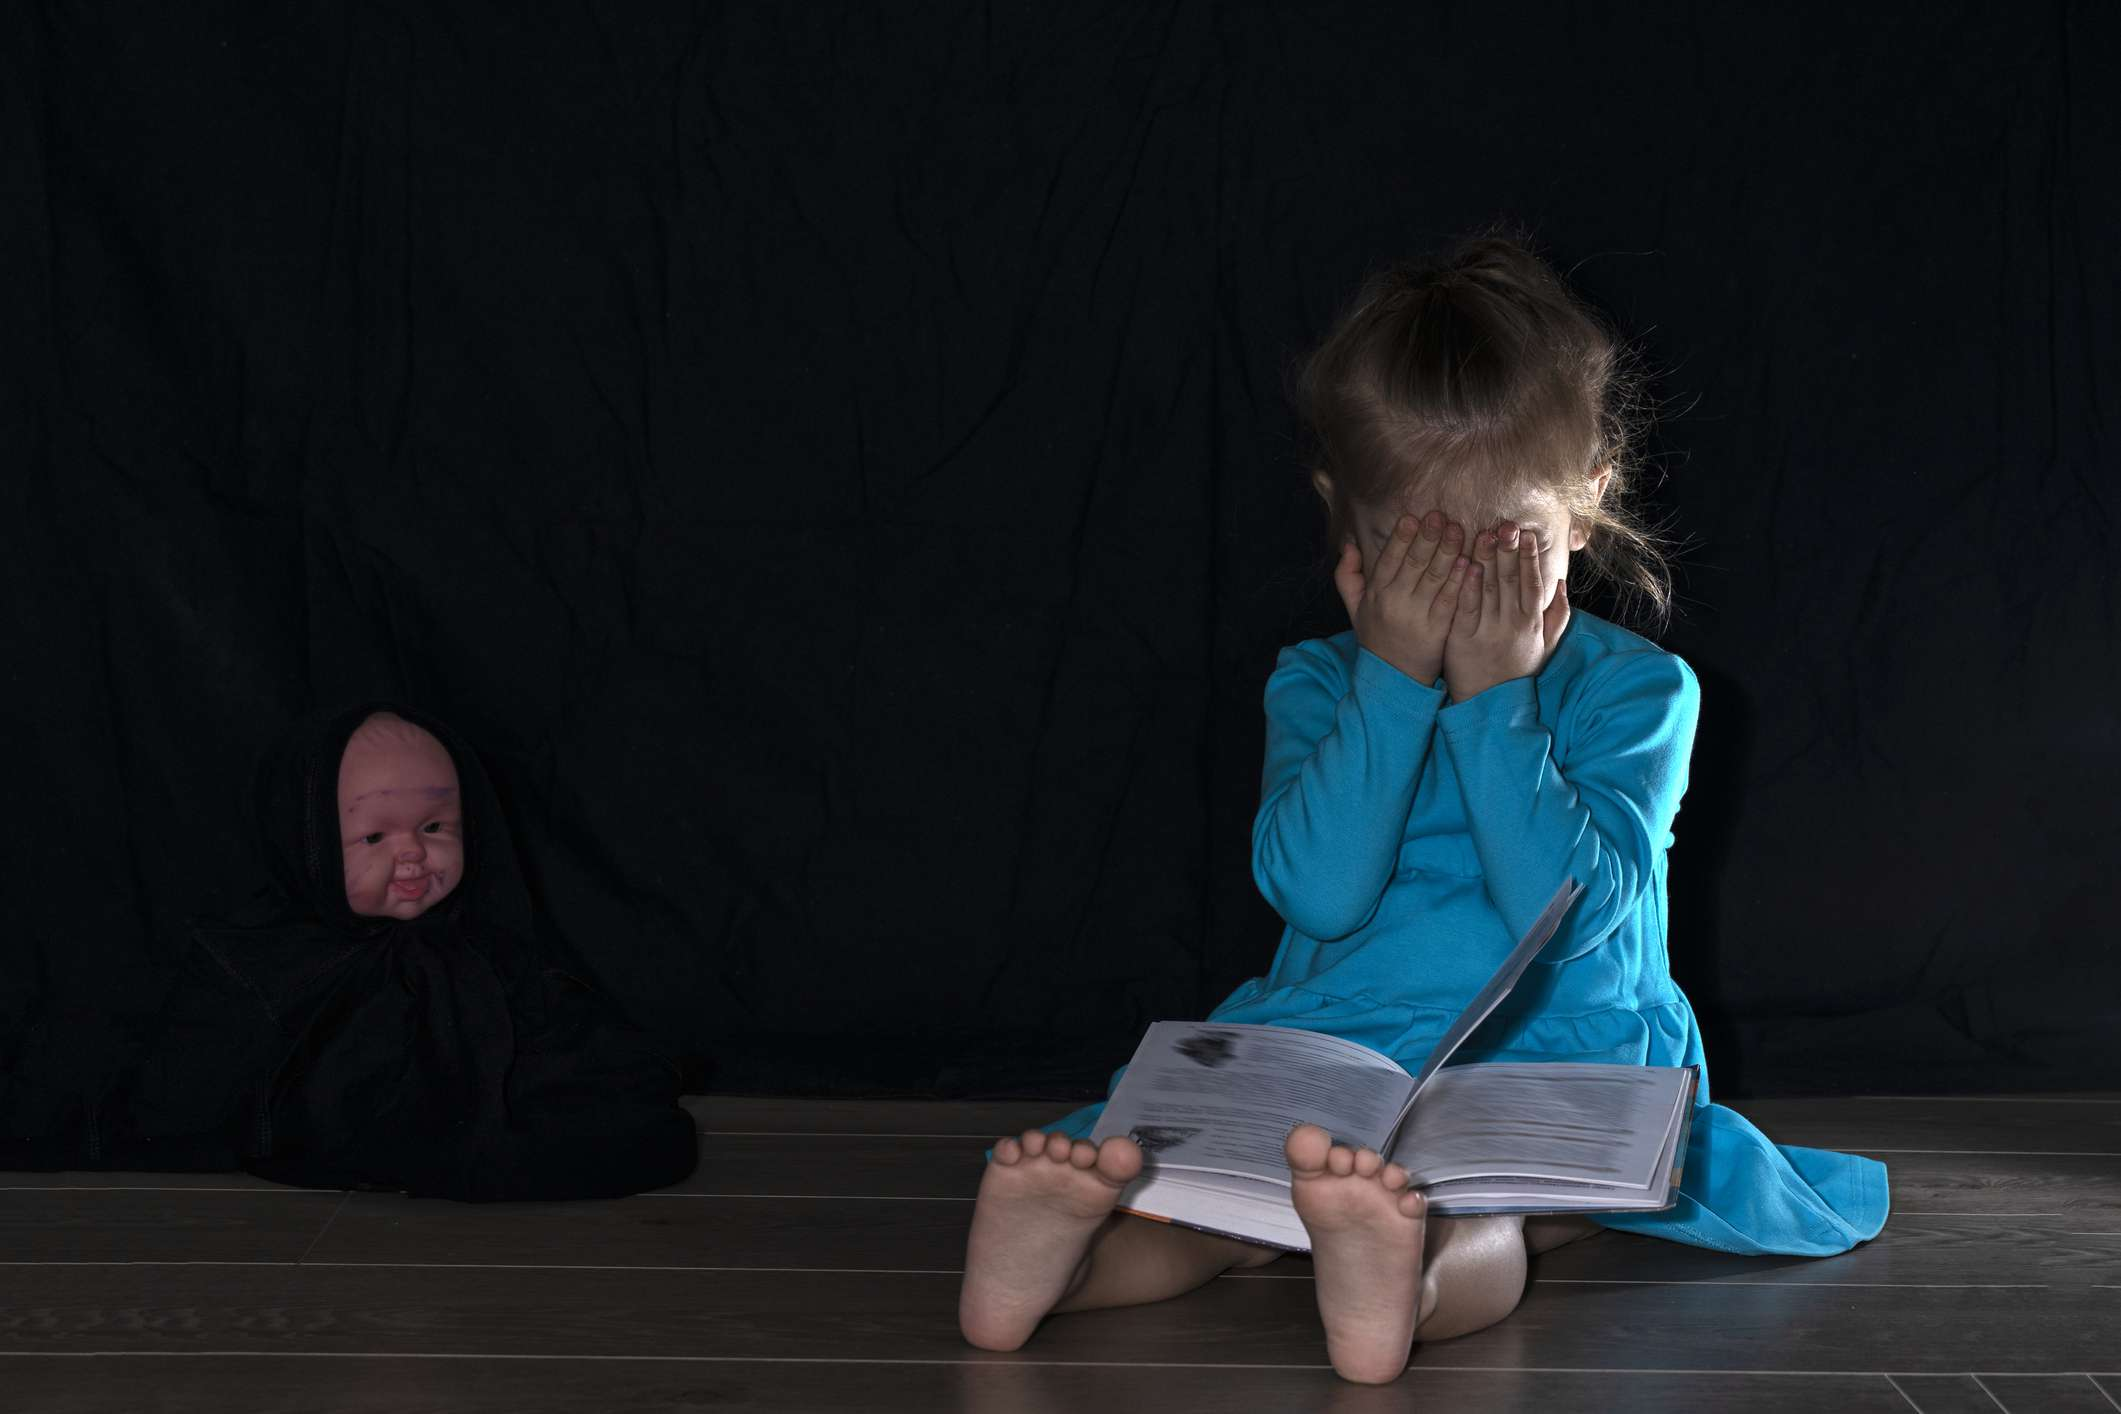 A child in a dark room sitting on the floor covers her eyes